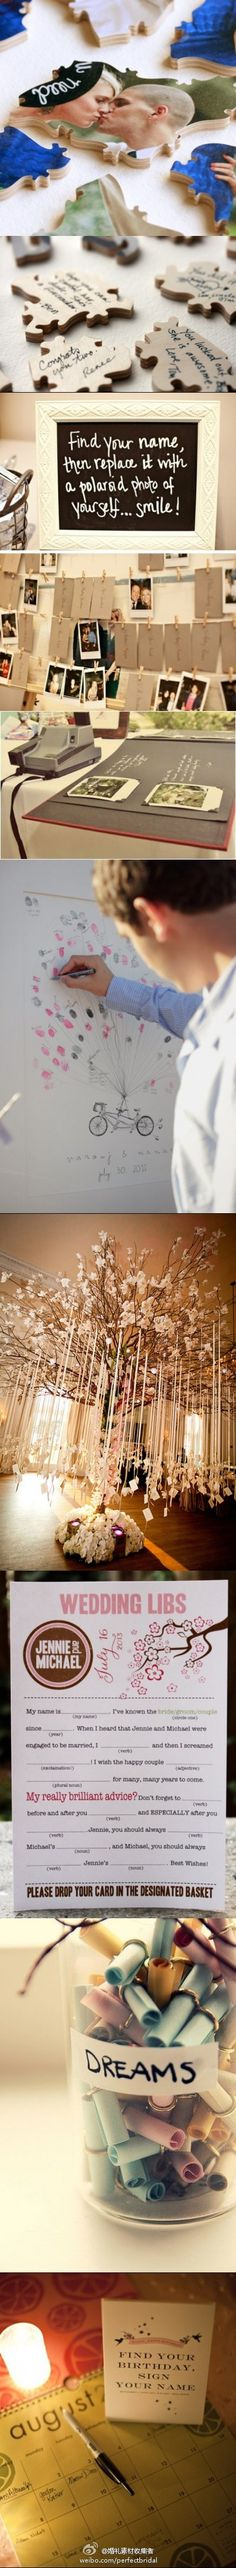 wedding sign-in ideas!